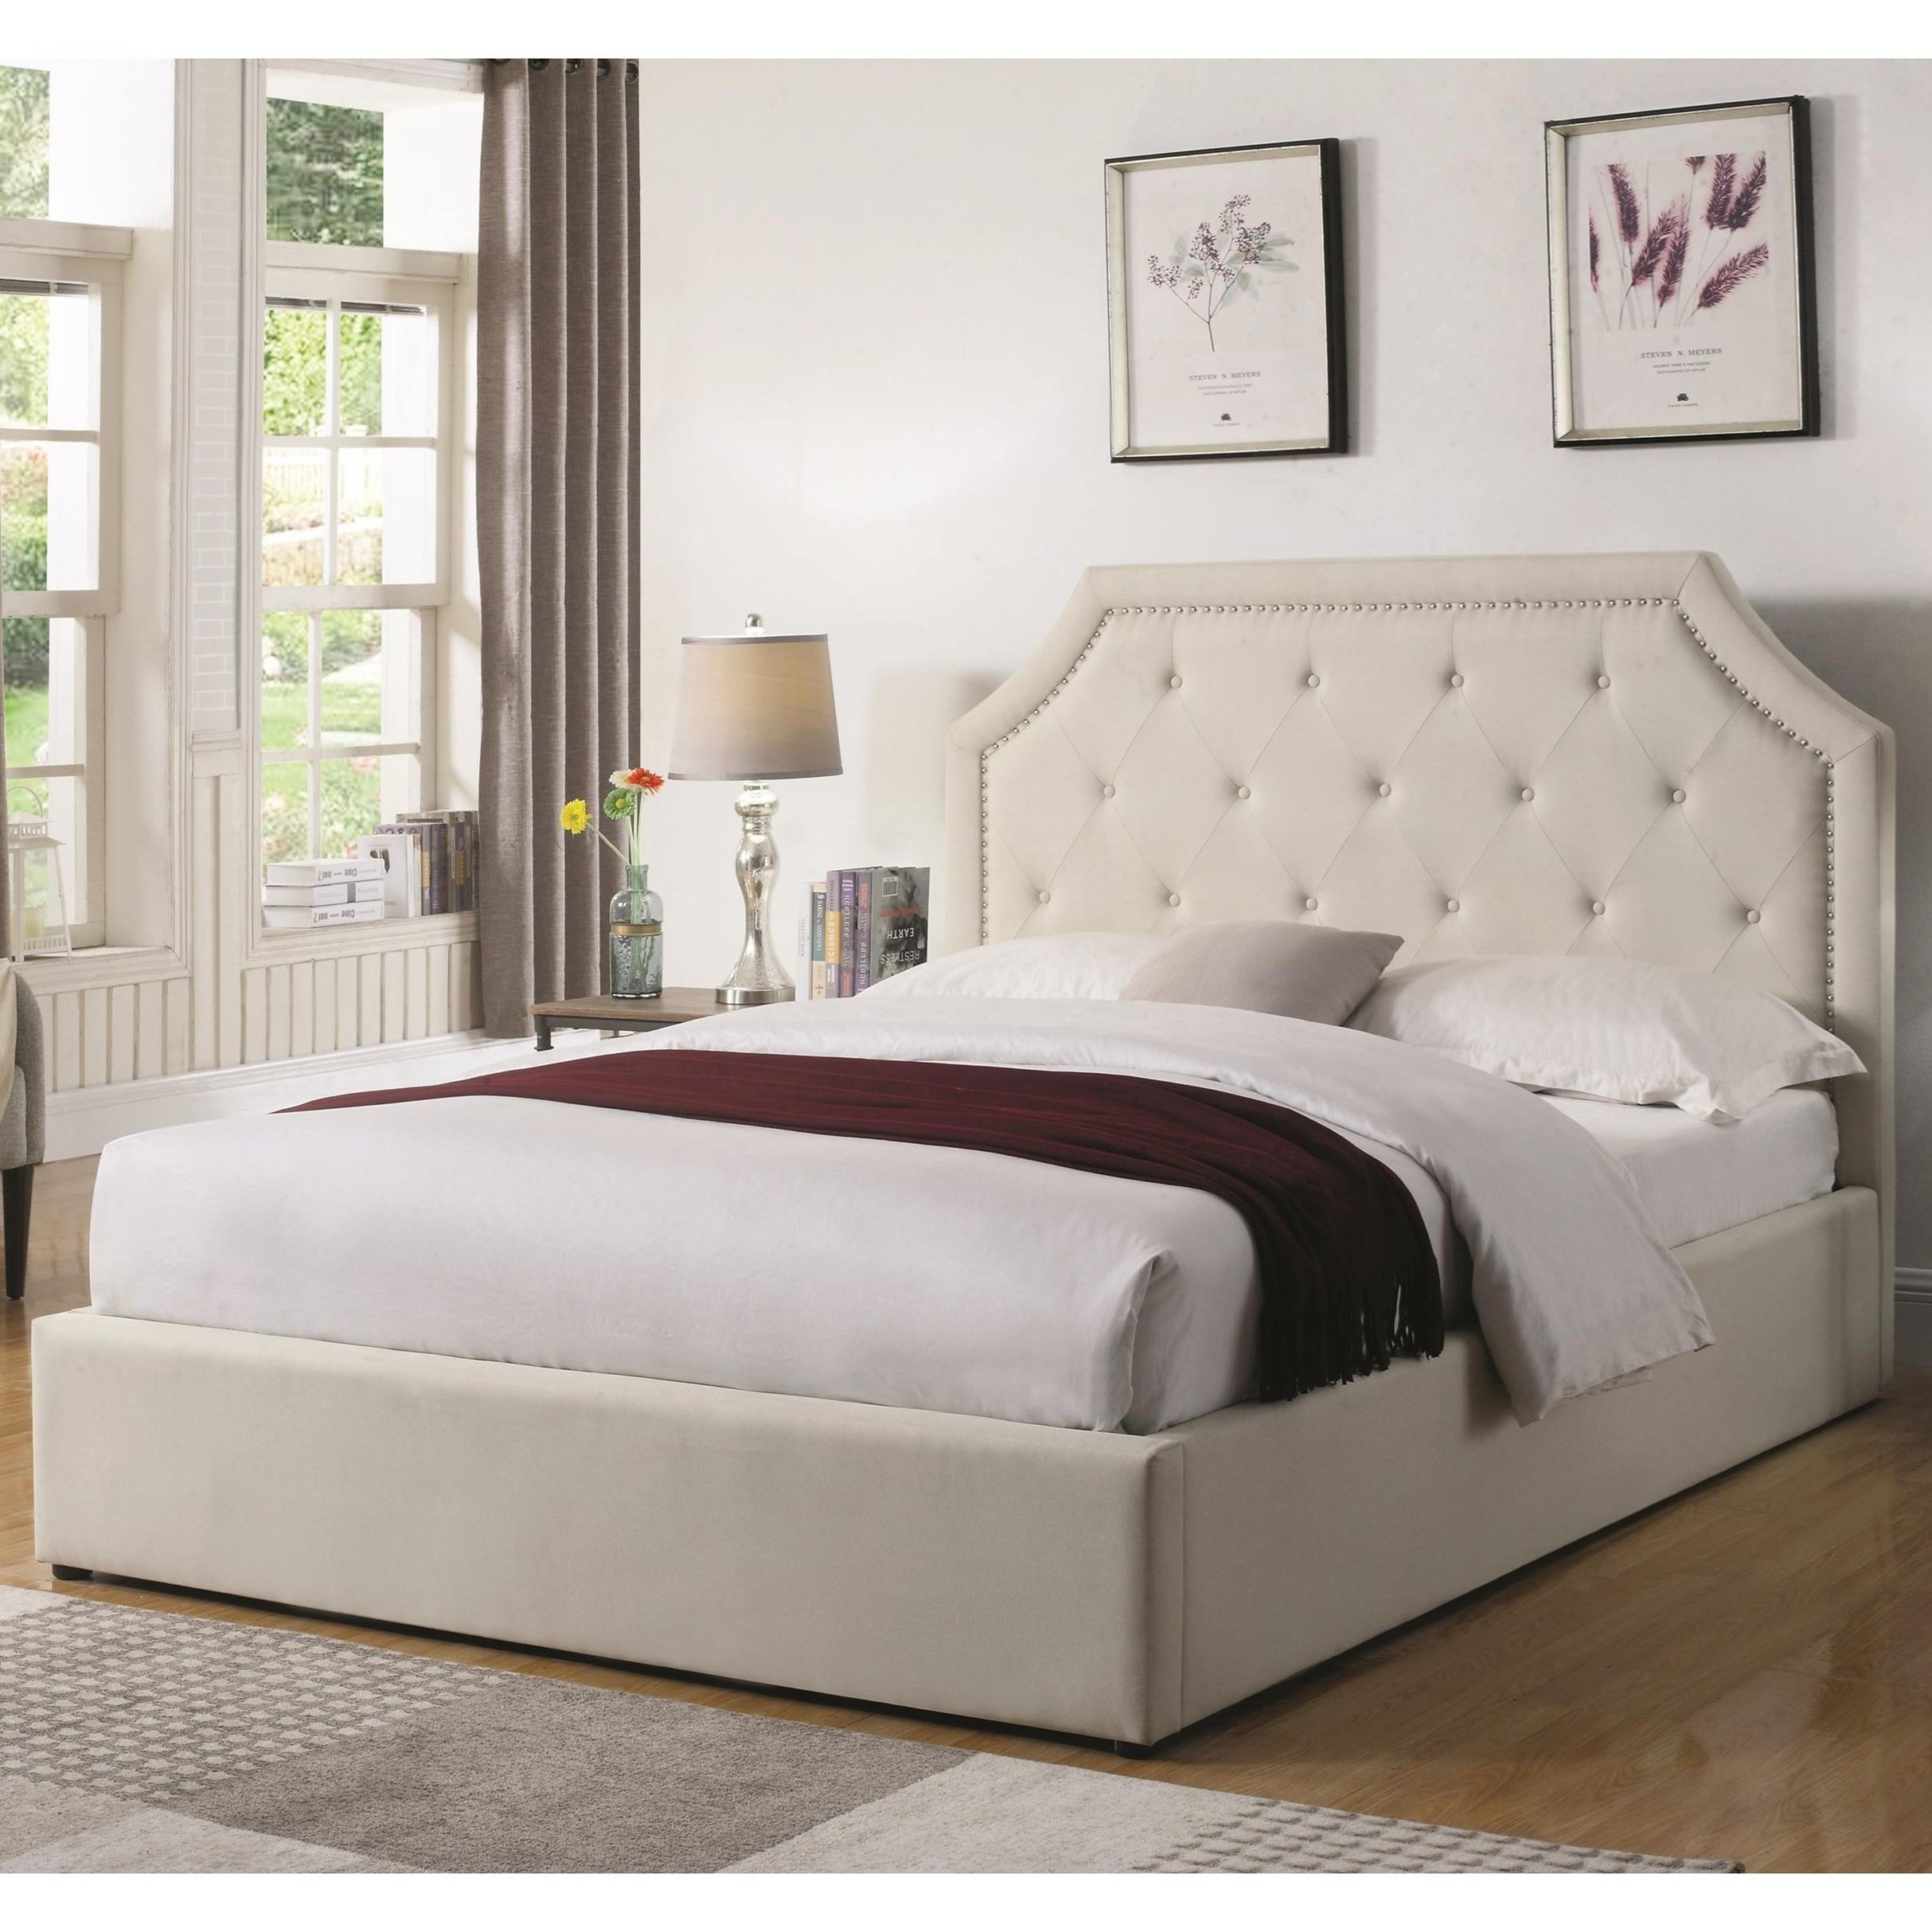 Coaster hermosa 301469ke easteren king upholstered bed - Lift up storage bed ...